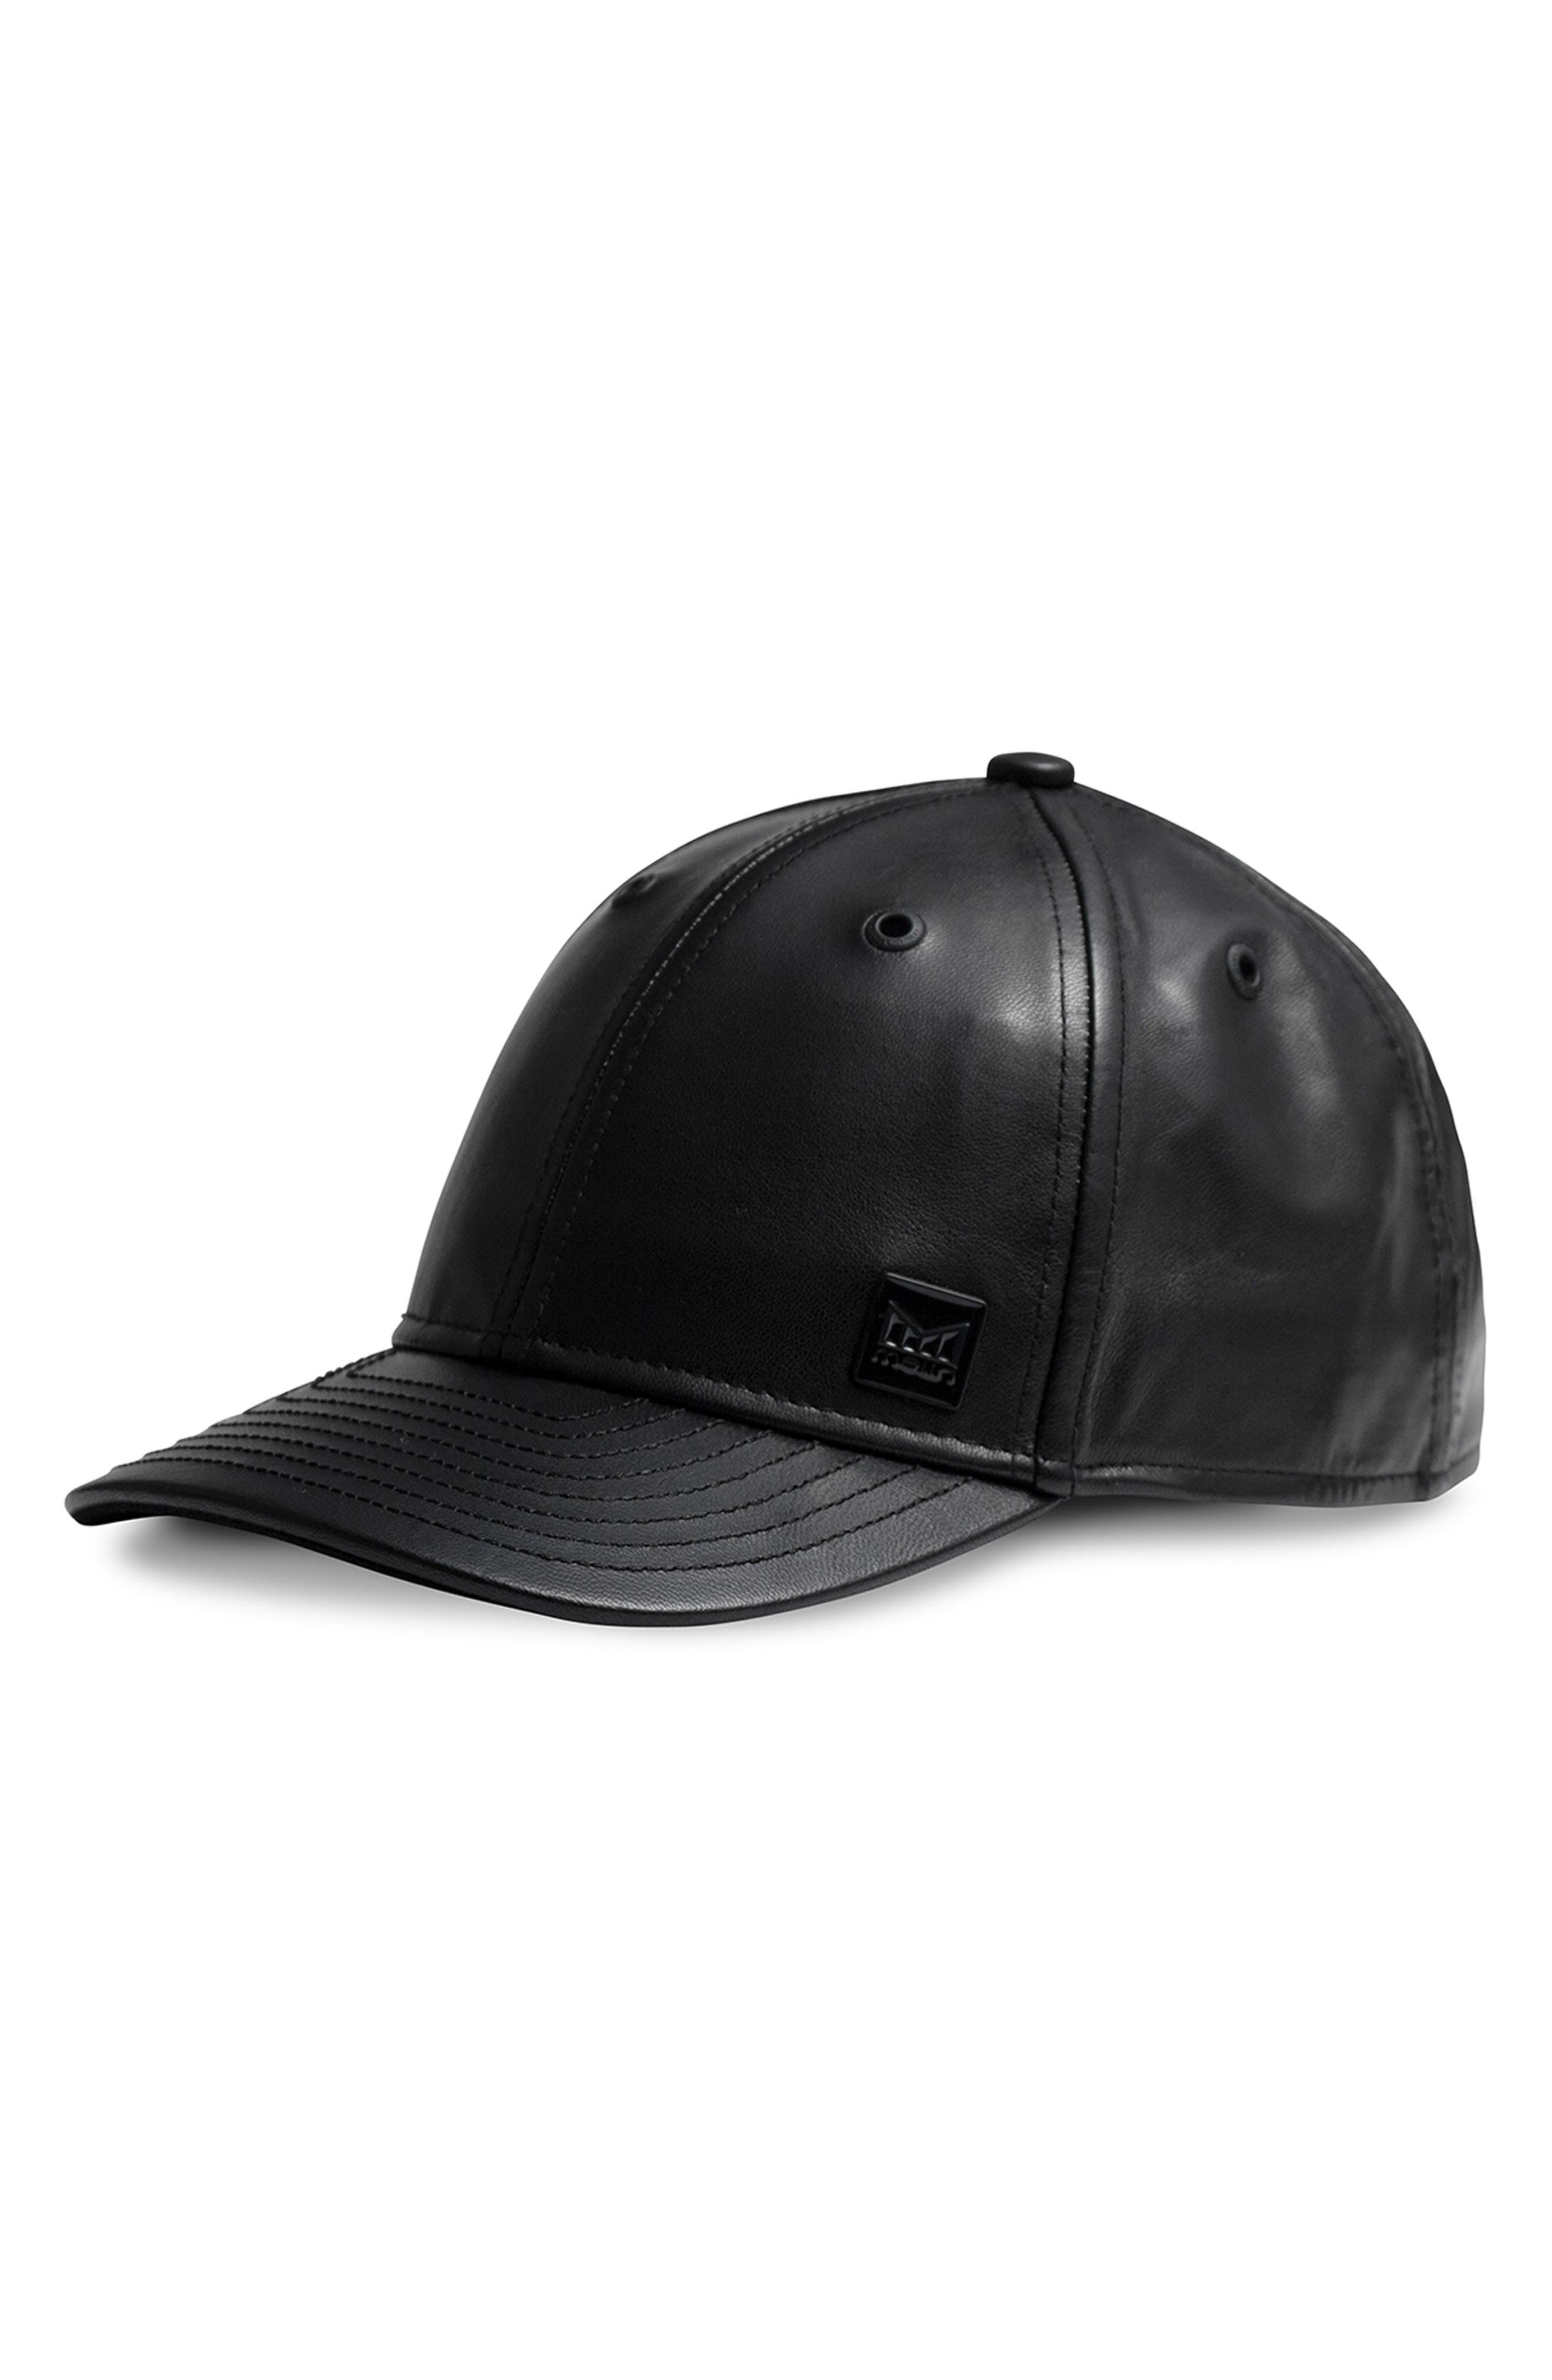 Voyage Elite Leather Ball Cap,                             Main thumbnail 1, color,                             BLACK